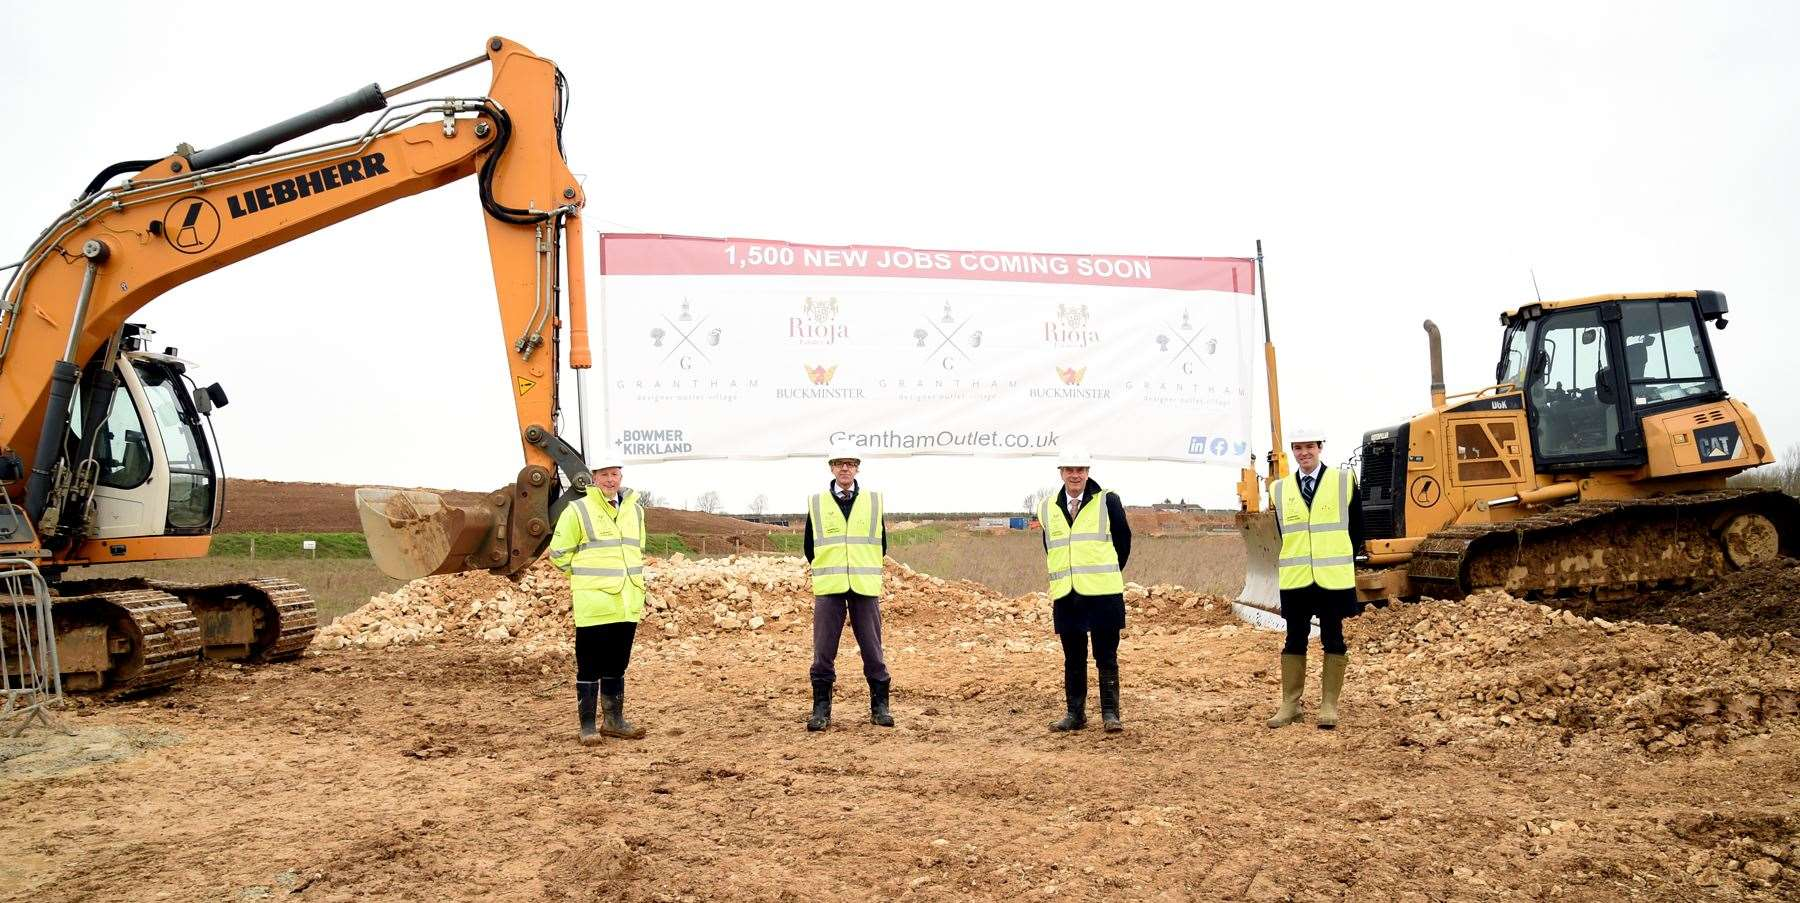 Gathering at the groundbreaking for the Grantham Designer Outlet Village are, from left, Gary Bradley, of Bowmer and Kirkland, William Lee of Buckminster, Giles Membrey of Rioja Developments, and Councillor Kelham Cooke, leader of SKDC. (45241768)